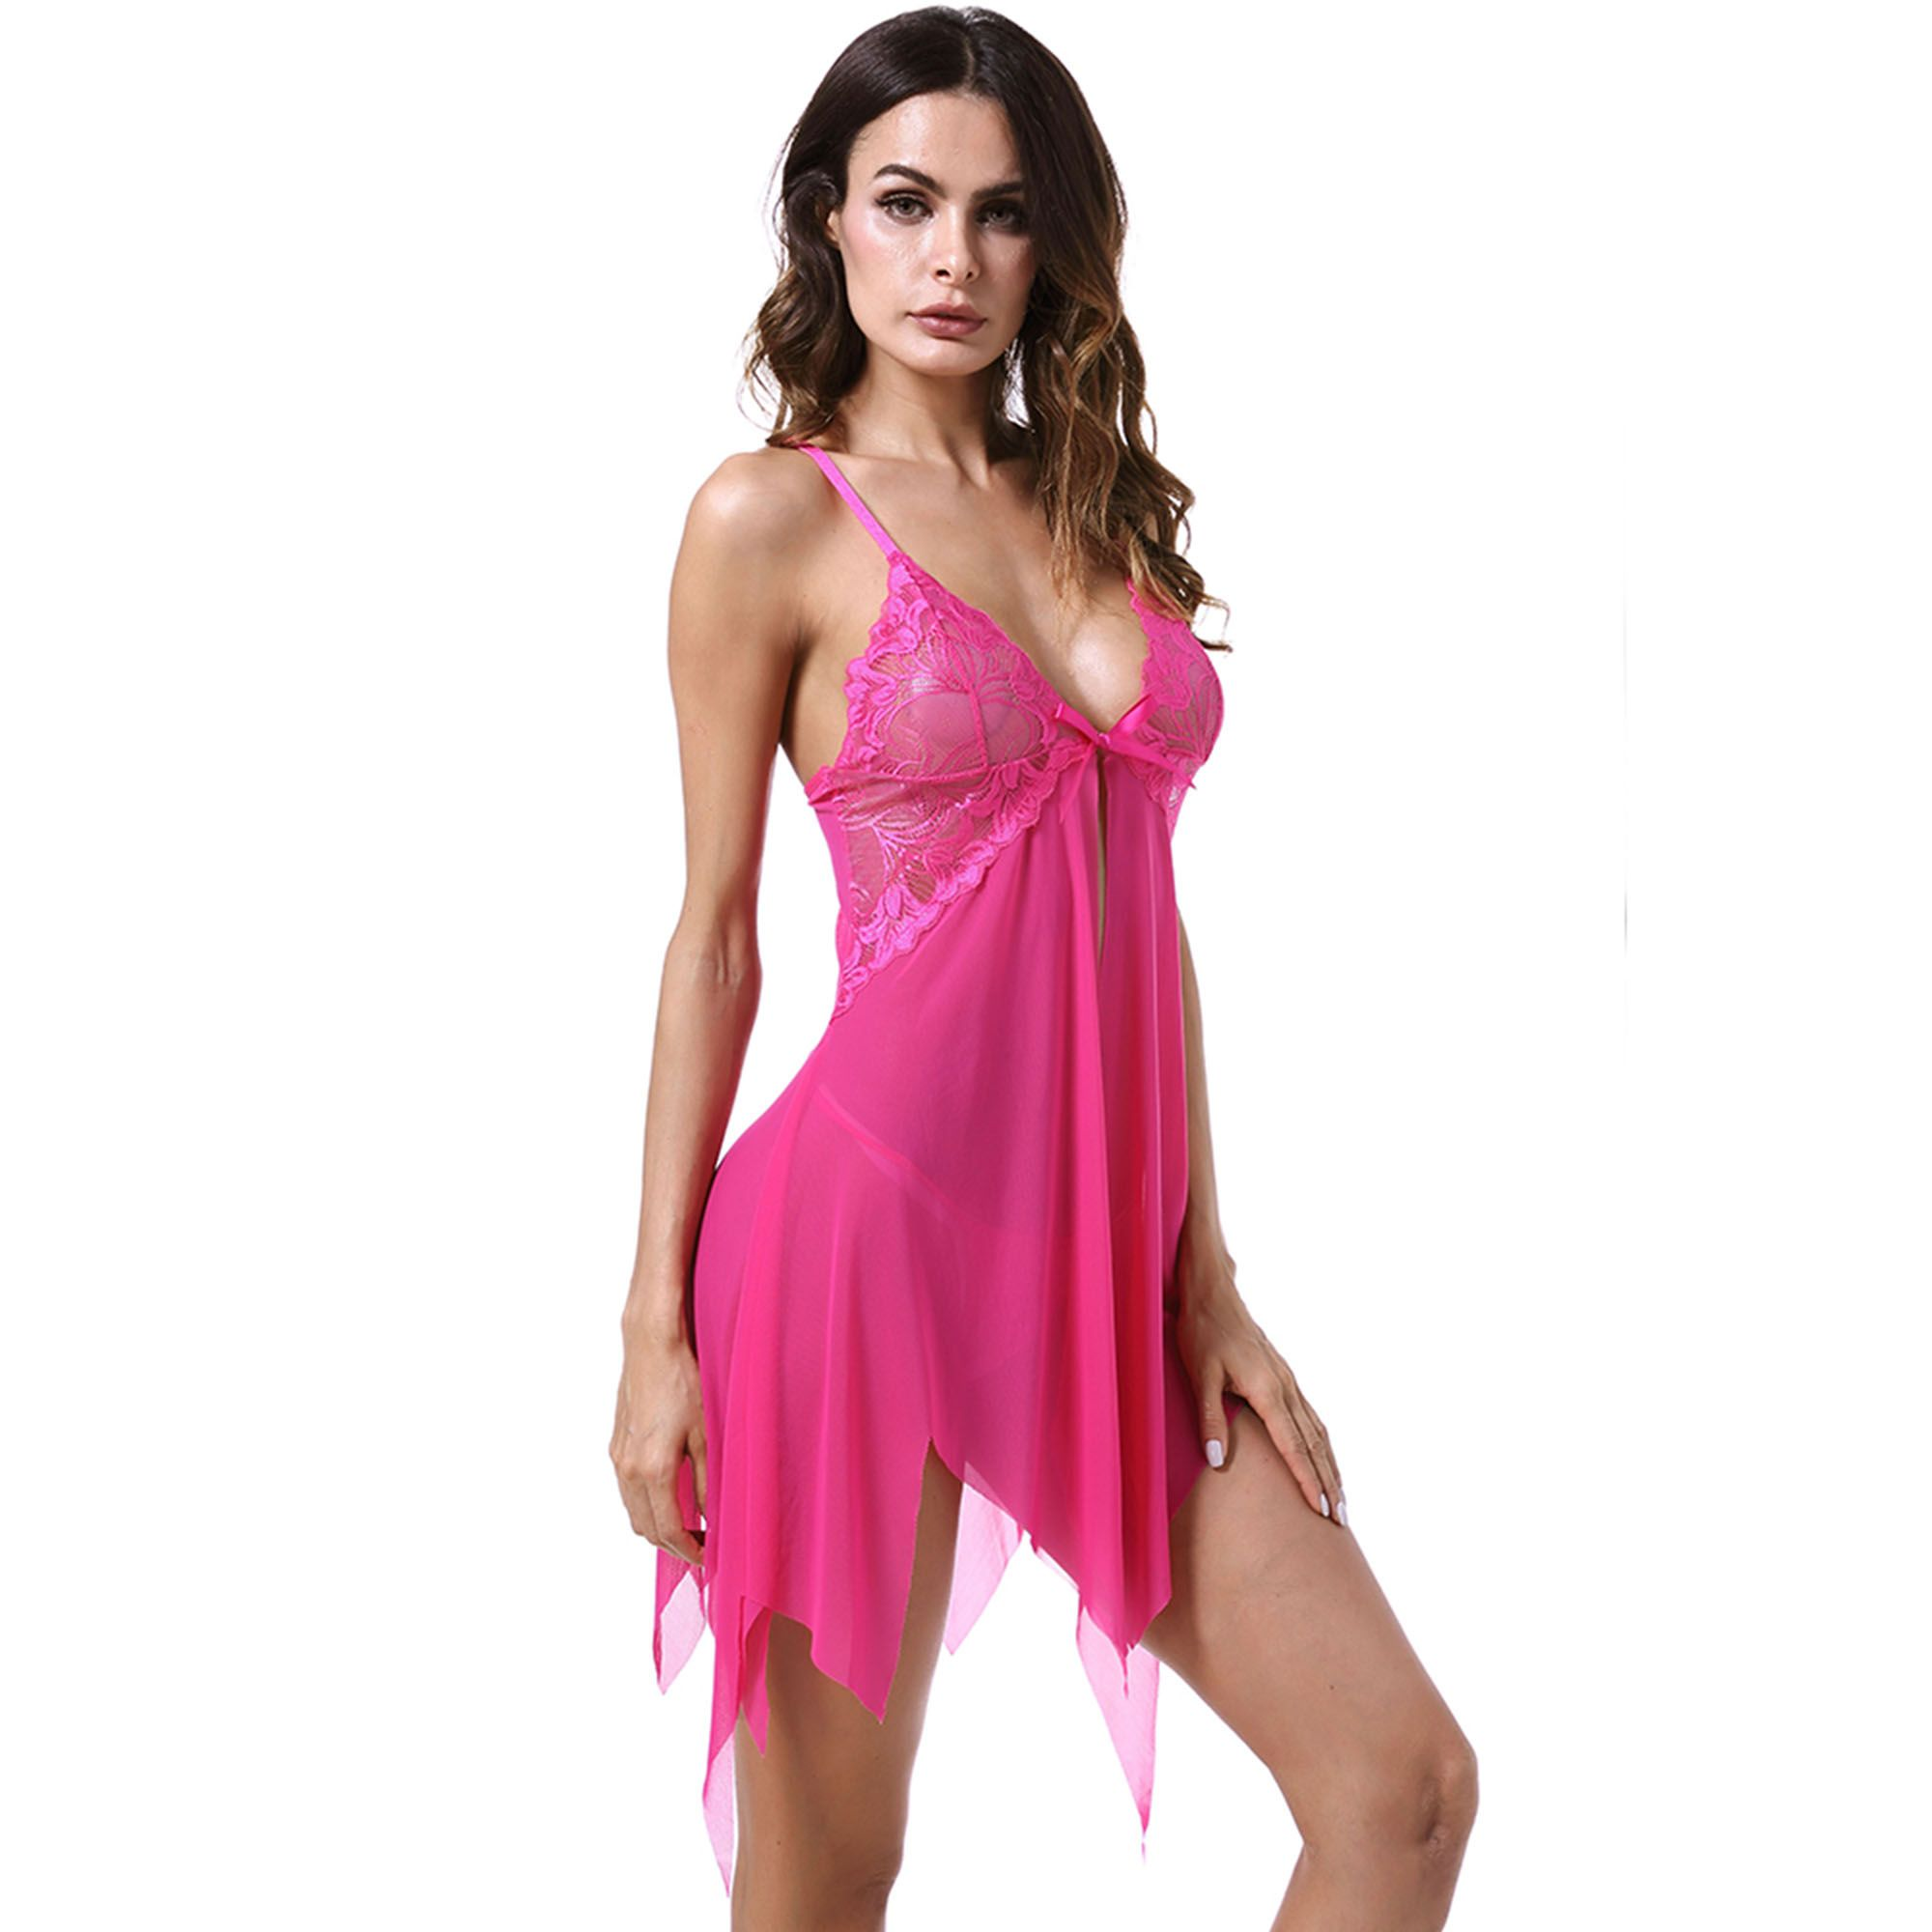 9fa405c51 Acappella Chemise Lingerie Sexy Nightie Full Slips Lace Babydoll Sleepwear  with G String Green Small Sexy